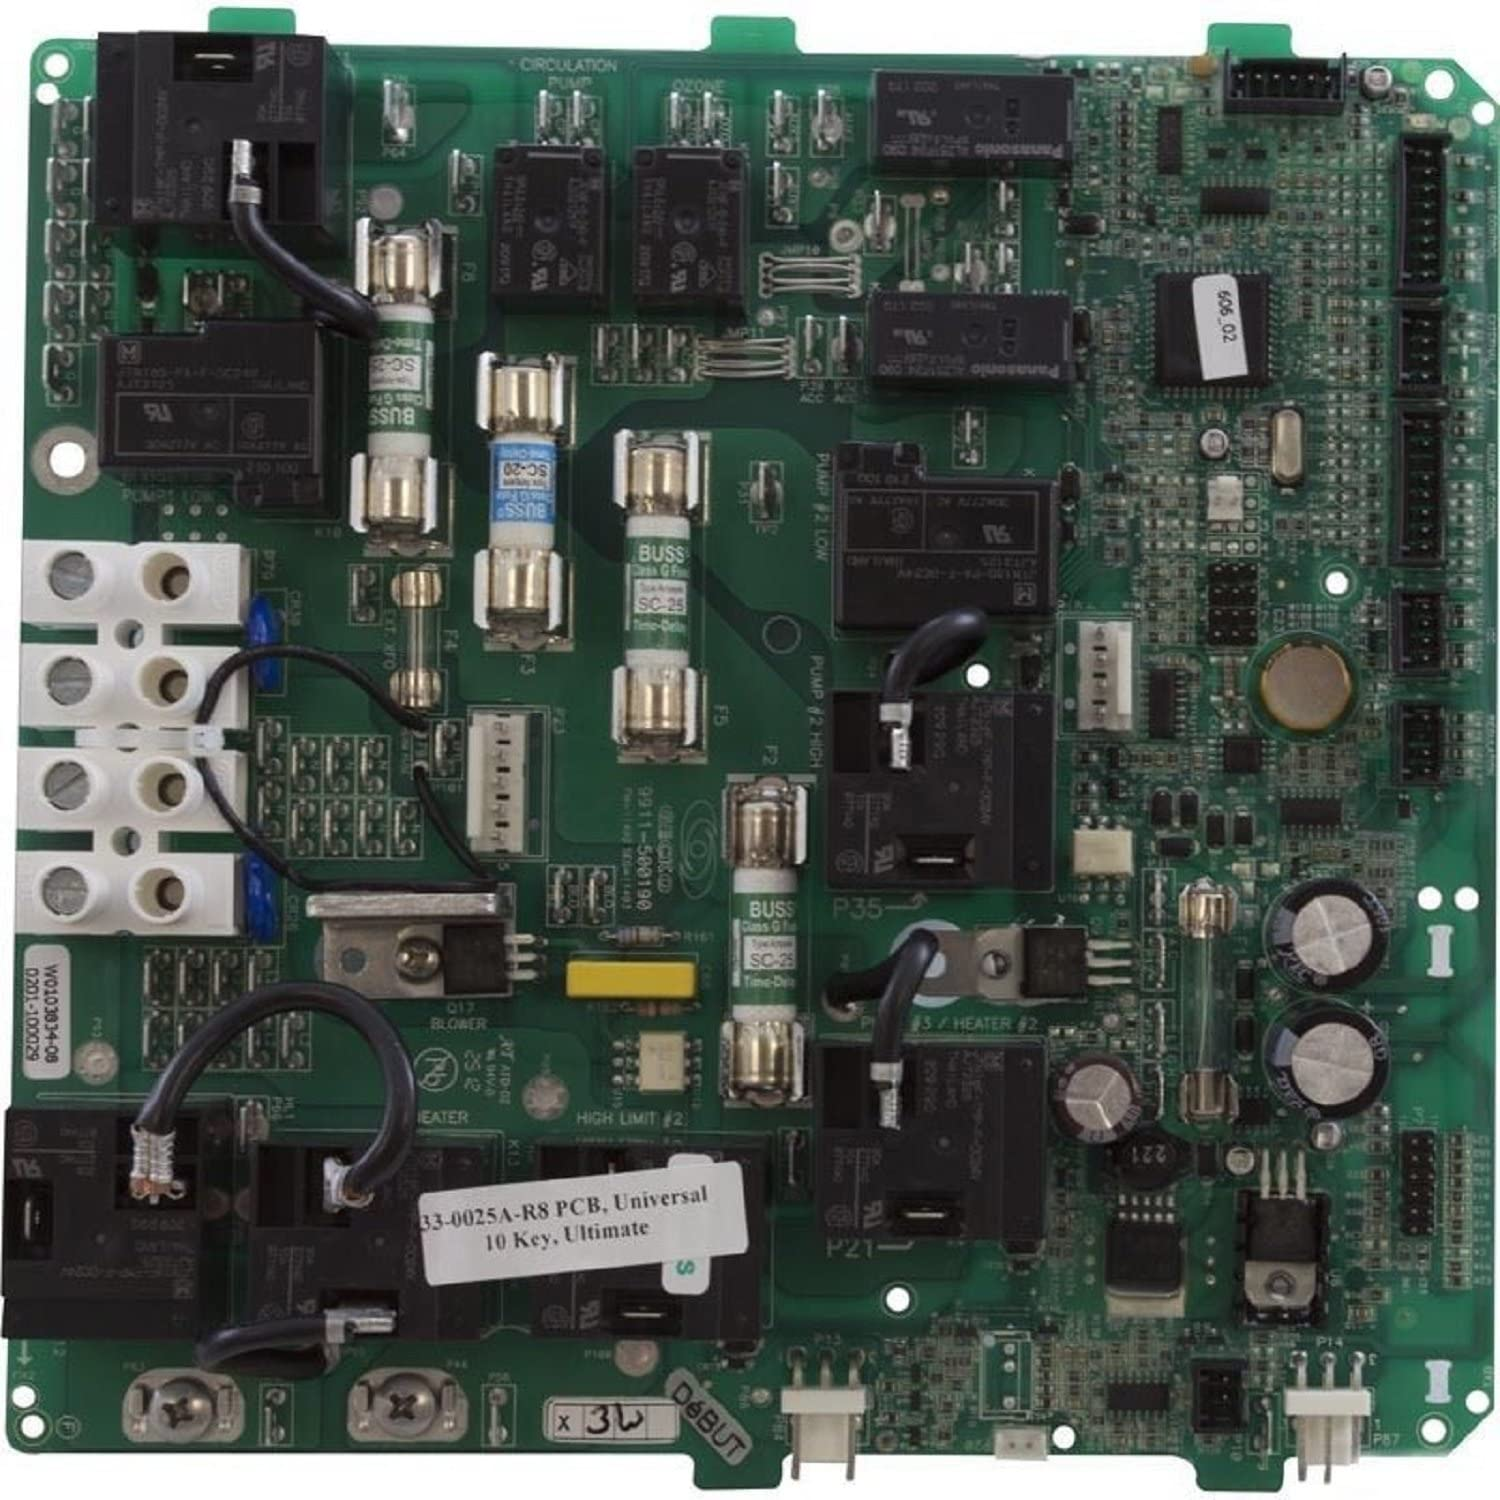 Amazon.com : Hydro-Quip 33-0025A-K 230V Circuit Board PCB Ultimate Plus :  Replacement Household Furnace Control Circuit Boards : Garden & Outdoor | Hydro Quip Heater Wiring Schematics |  | Amazon.com